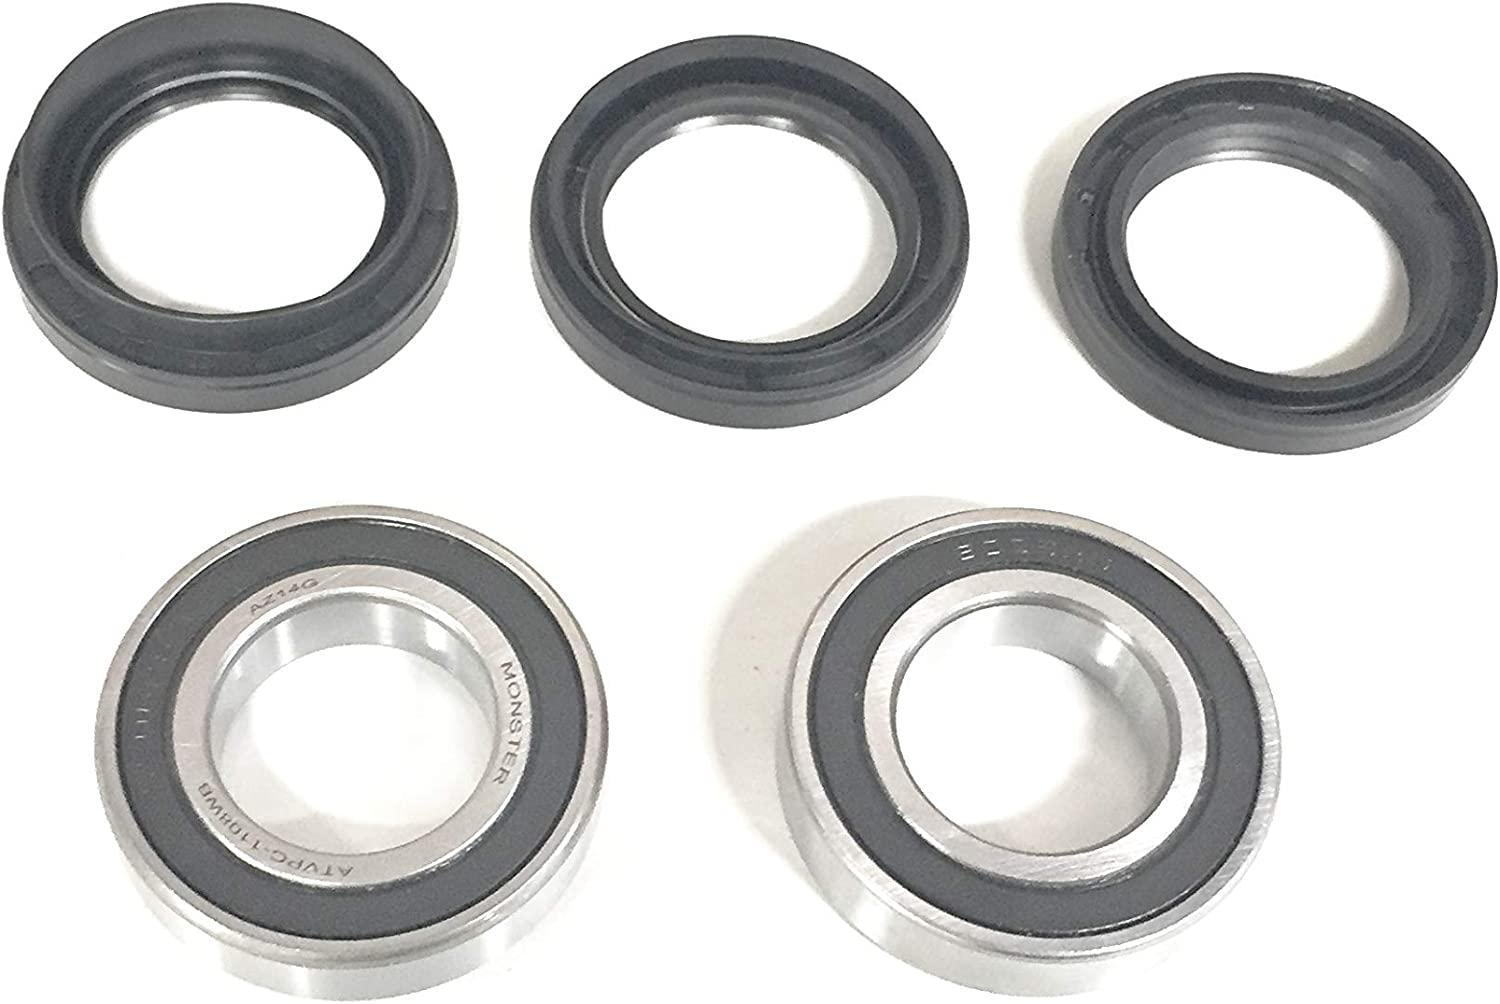 2002-2007 Suzuki Vinson 500//Eiger 400 2x4 4x4 BOTH Front Wheel Bearing and Seal Kits